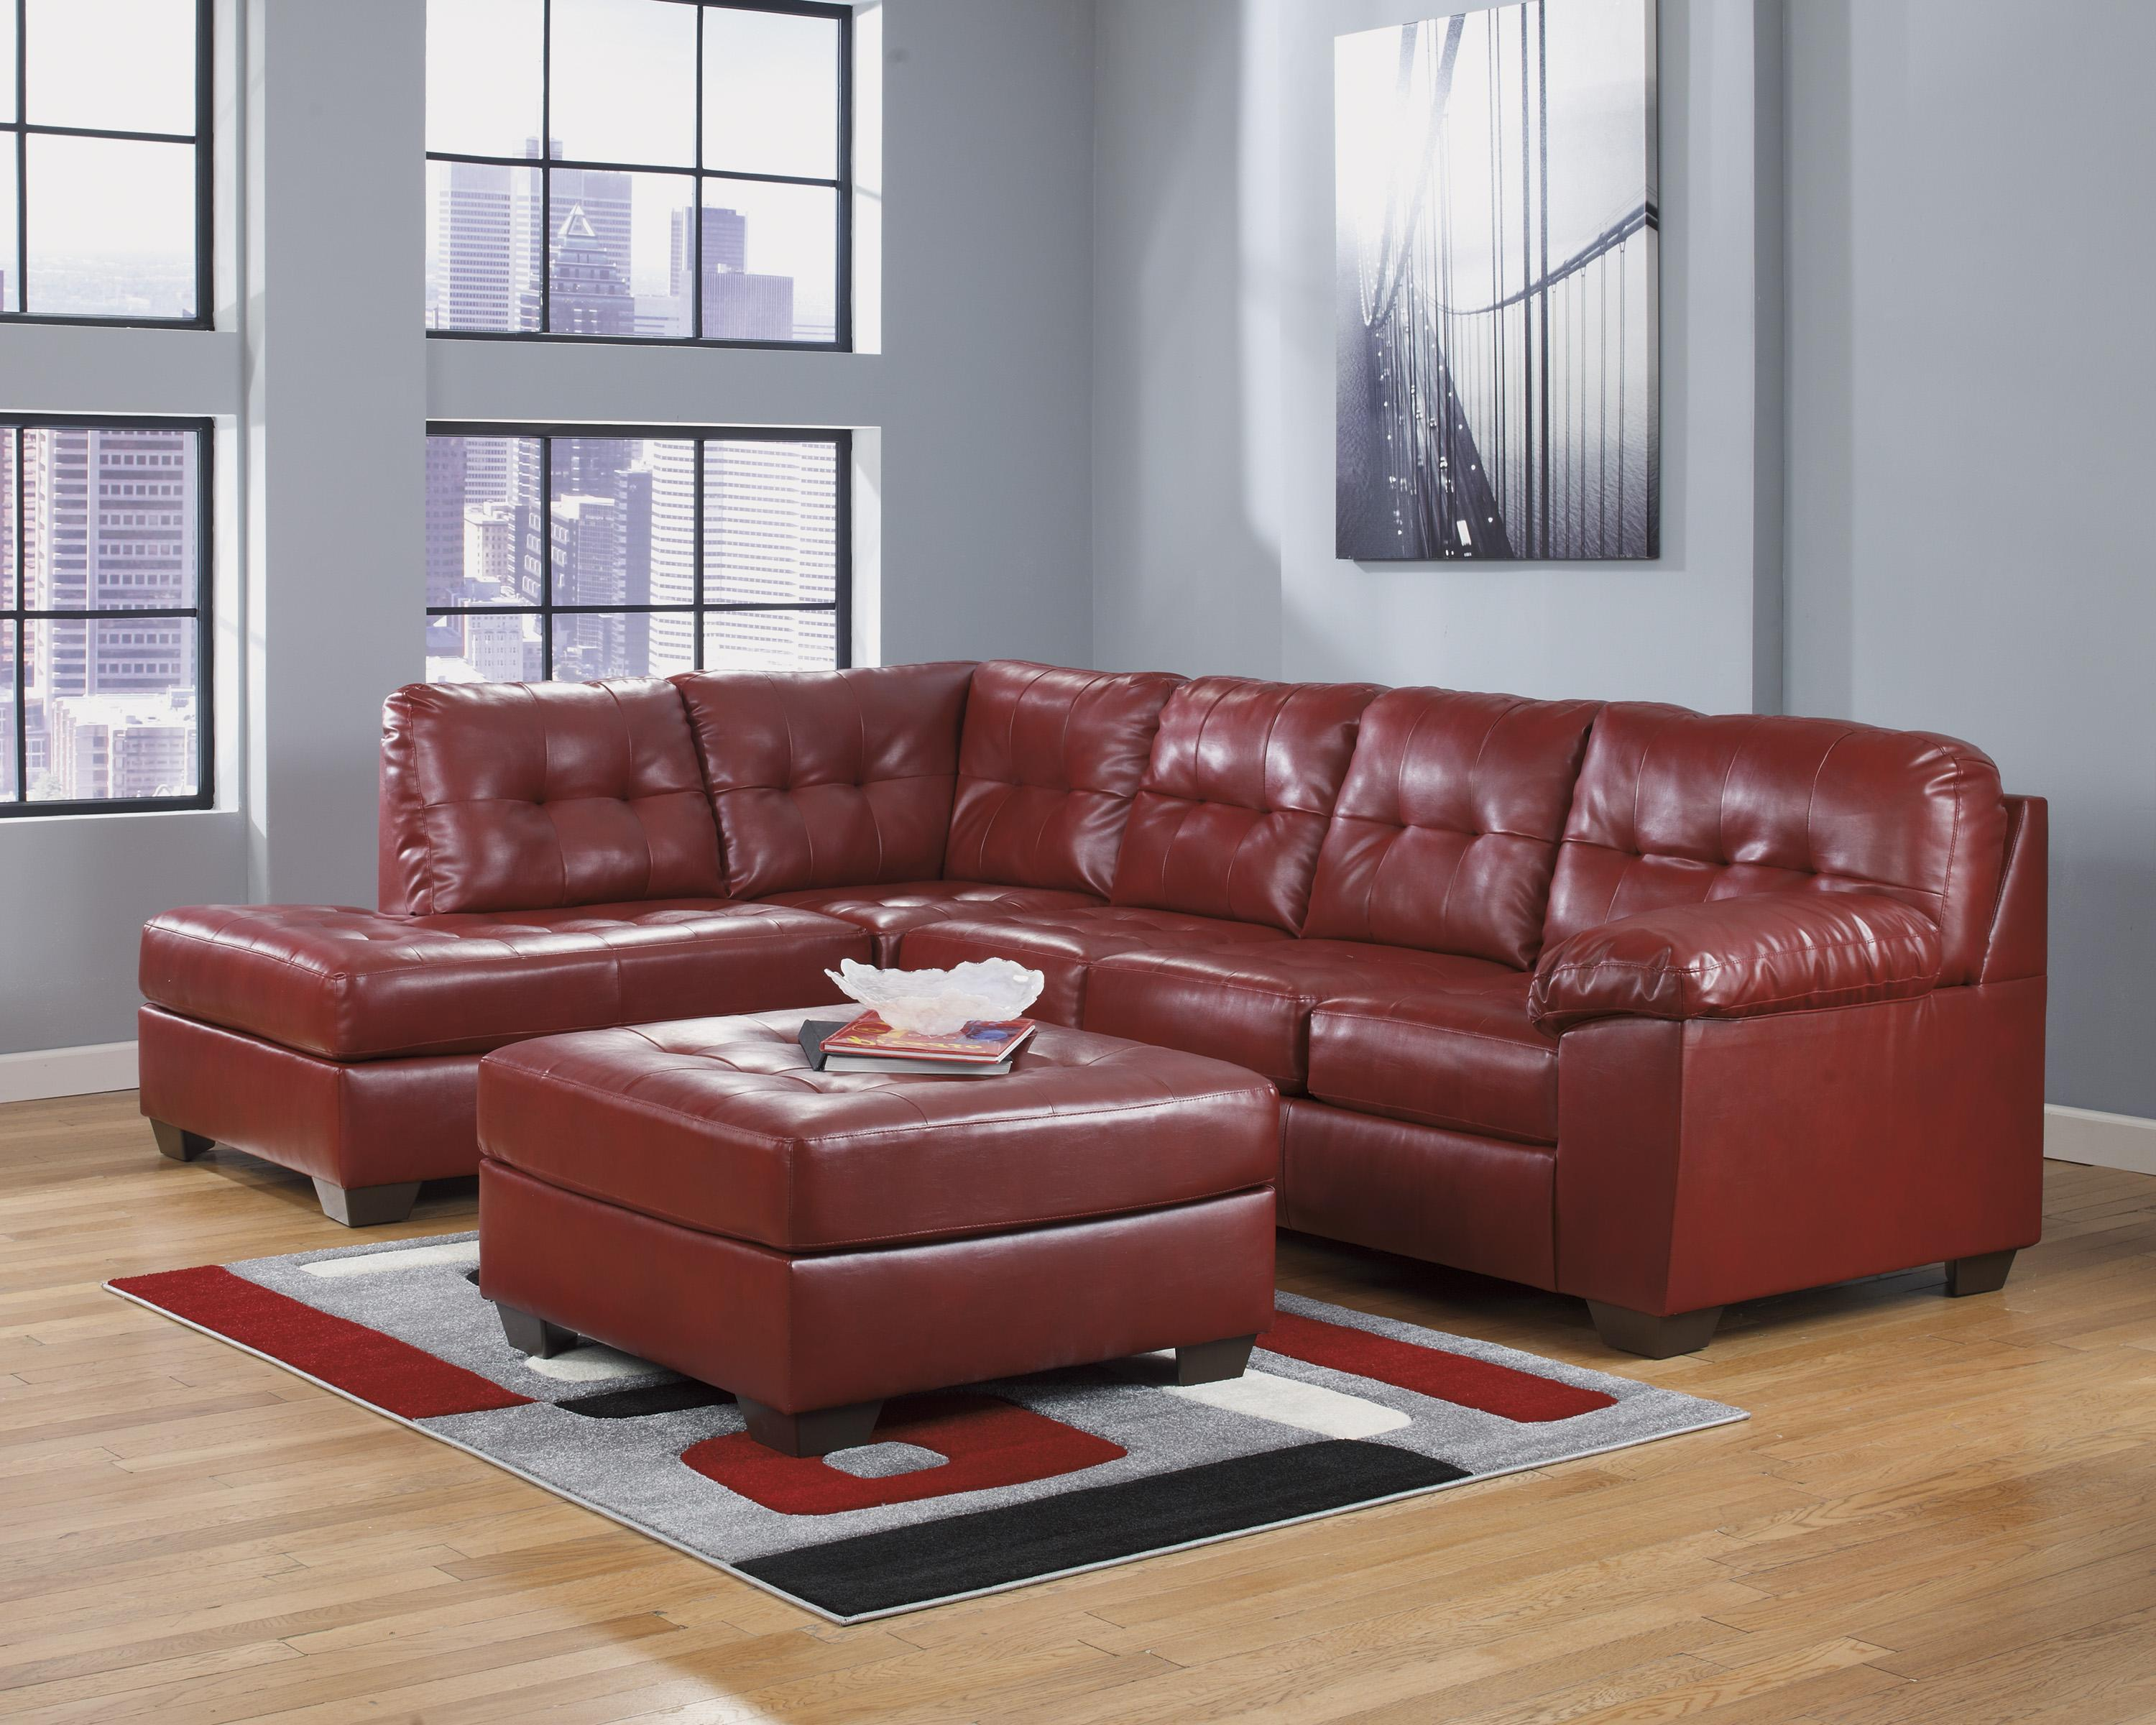 Faux leather sectional w left chaise tufting by for Ashley furniture leather chaise